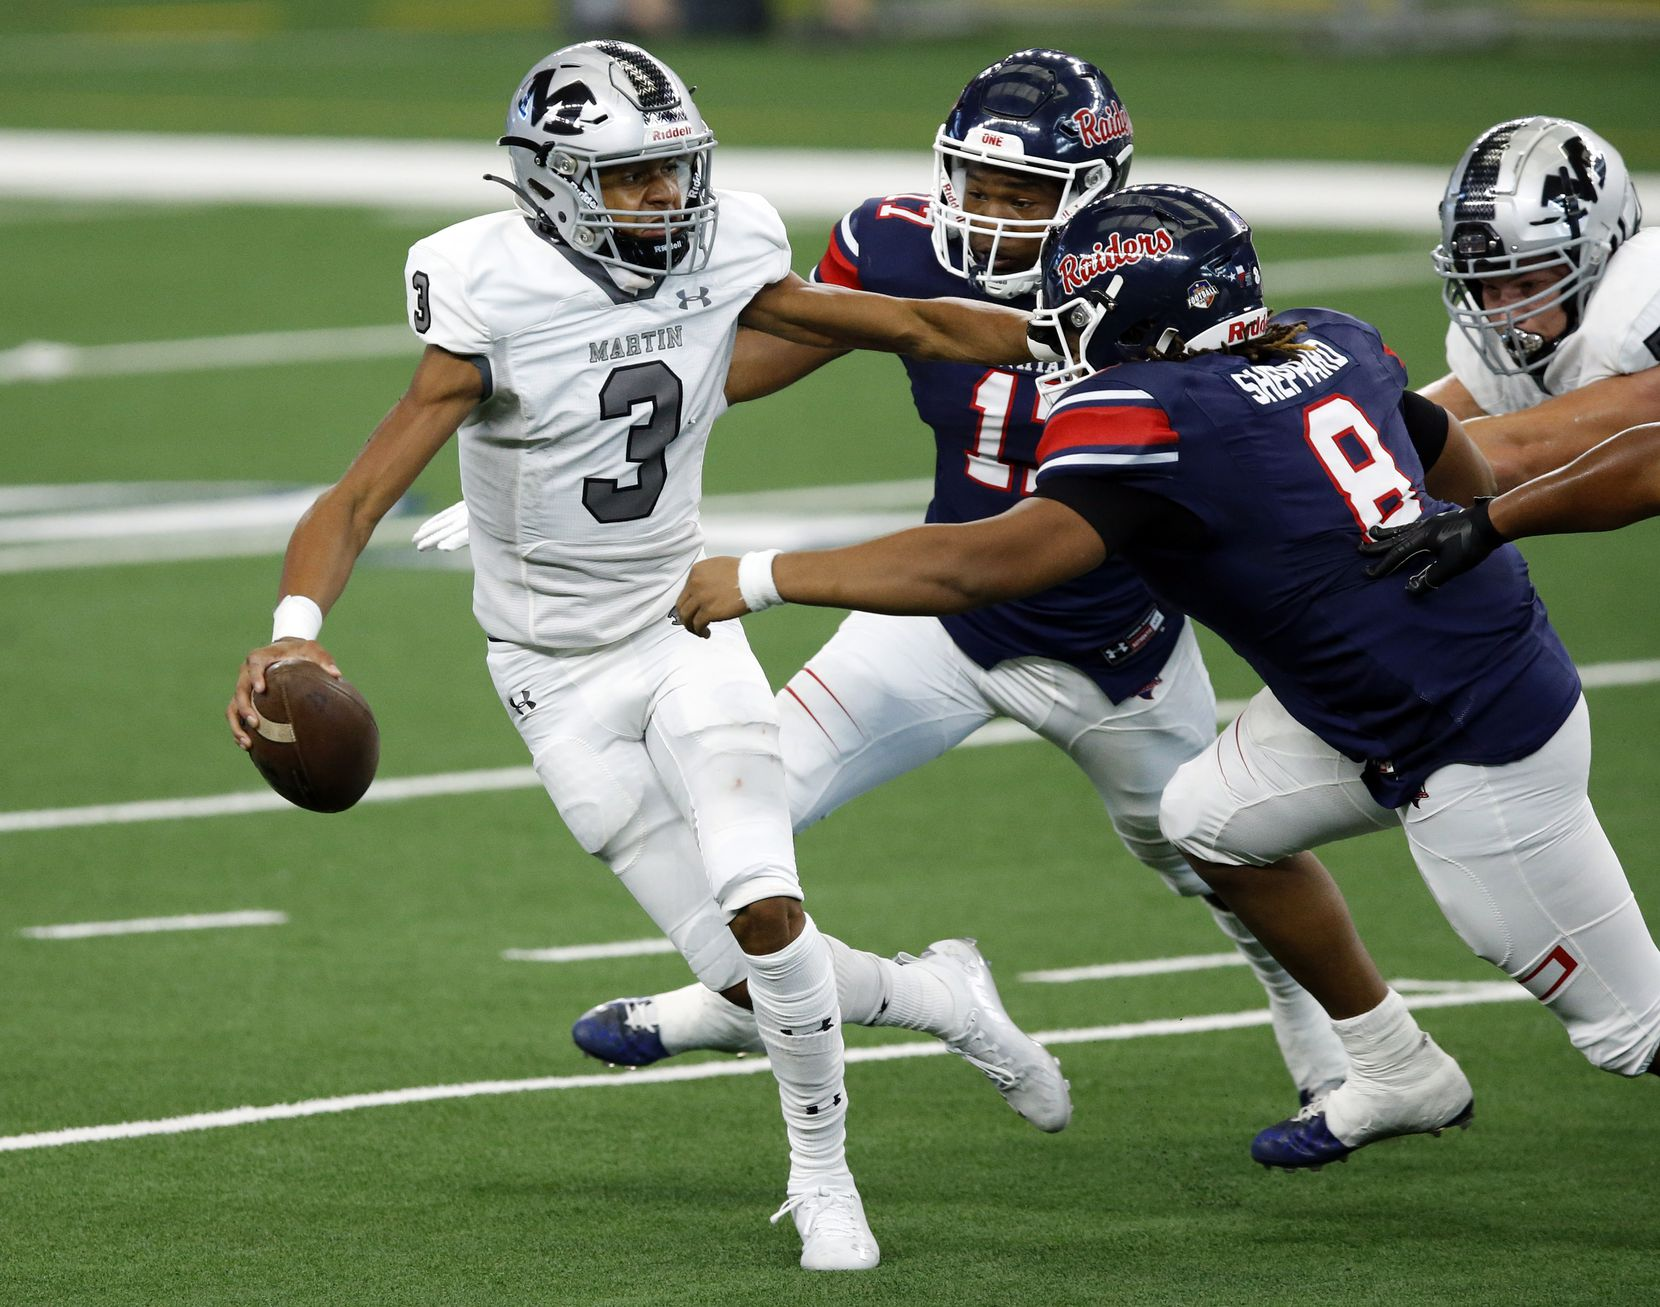 Arlington Martin receiver Cydd Ford tries to elude Denton Ryan defenders Jay Sheppard (8) and Michael Gee (17) on a direct snap during the first half at AT&T Stadium in Arlington, Friday, September 25, 2020. (Tom Fox/The Dallas Morning News)